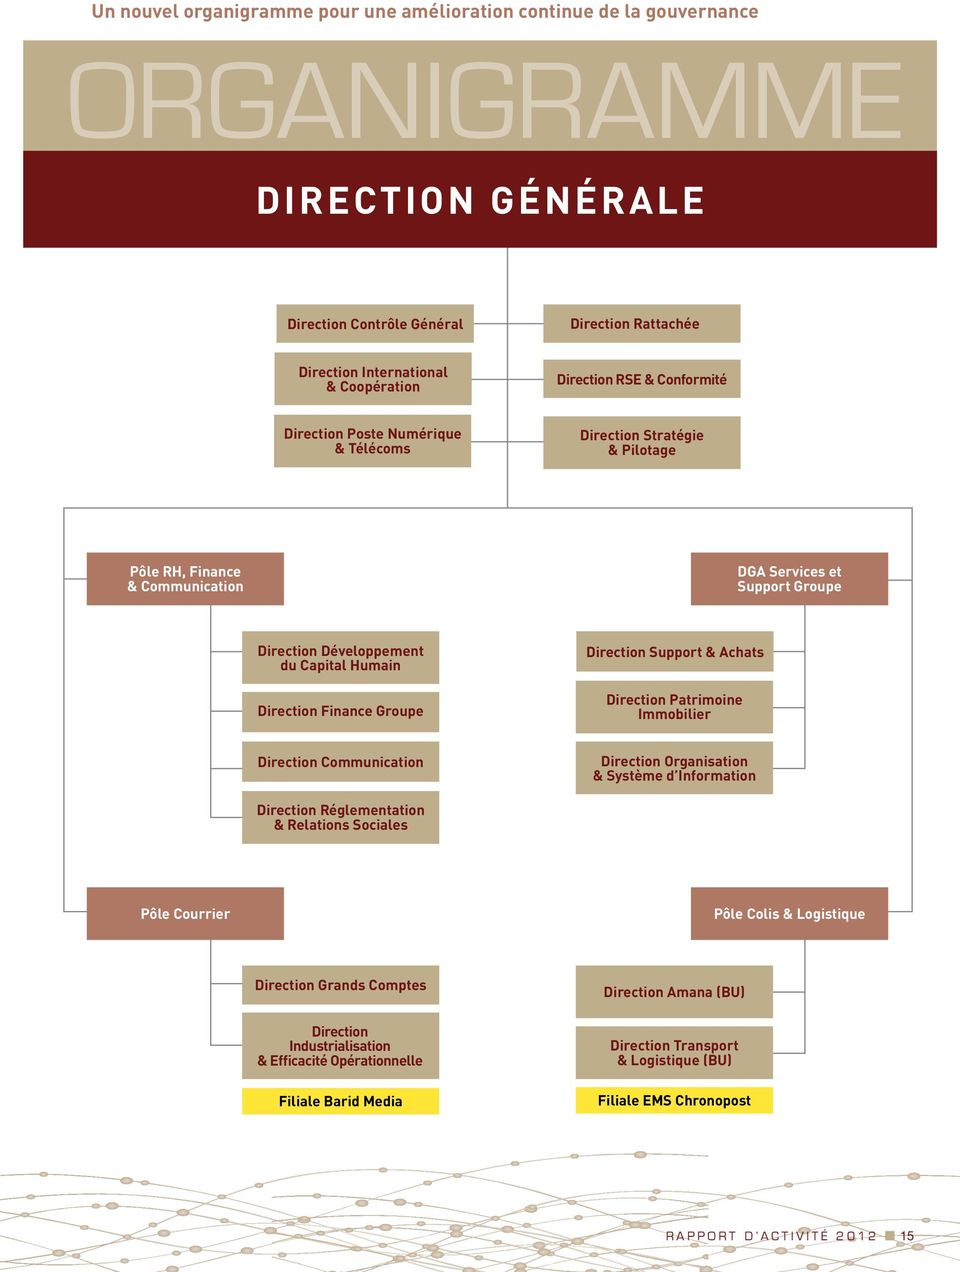 Direction Finance Groupe Direction Support & Achats Direction Patrimoine Immobilier Direction Communication Direction Organisation & Système d Information Direction Réglementation & Relations